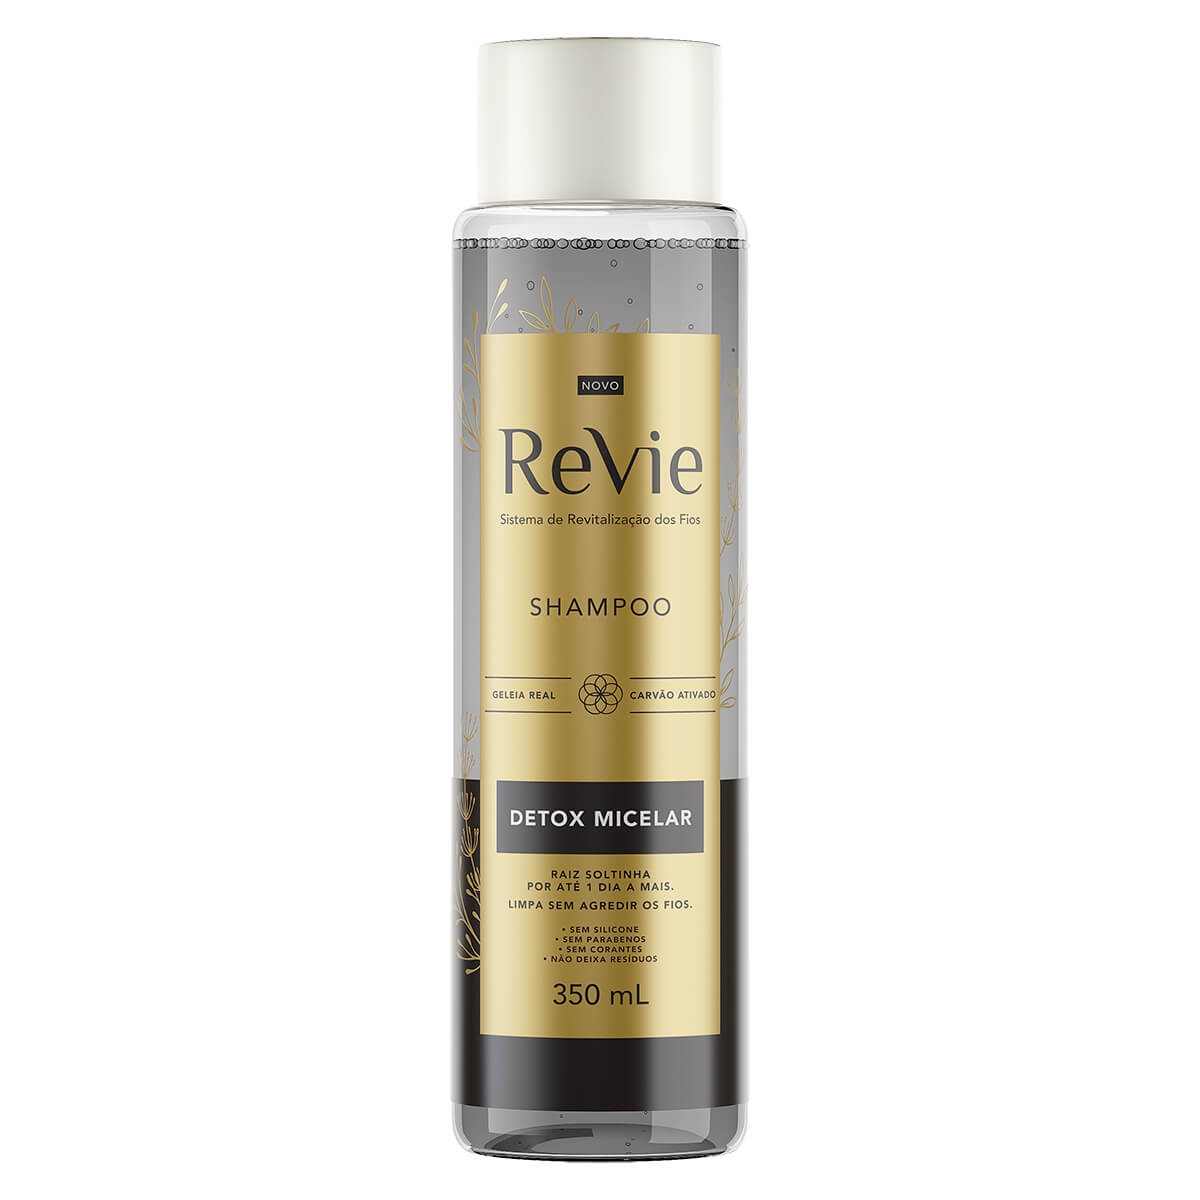 Shampoo Revie Detox Micelar 350ml